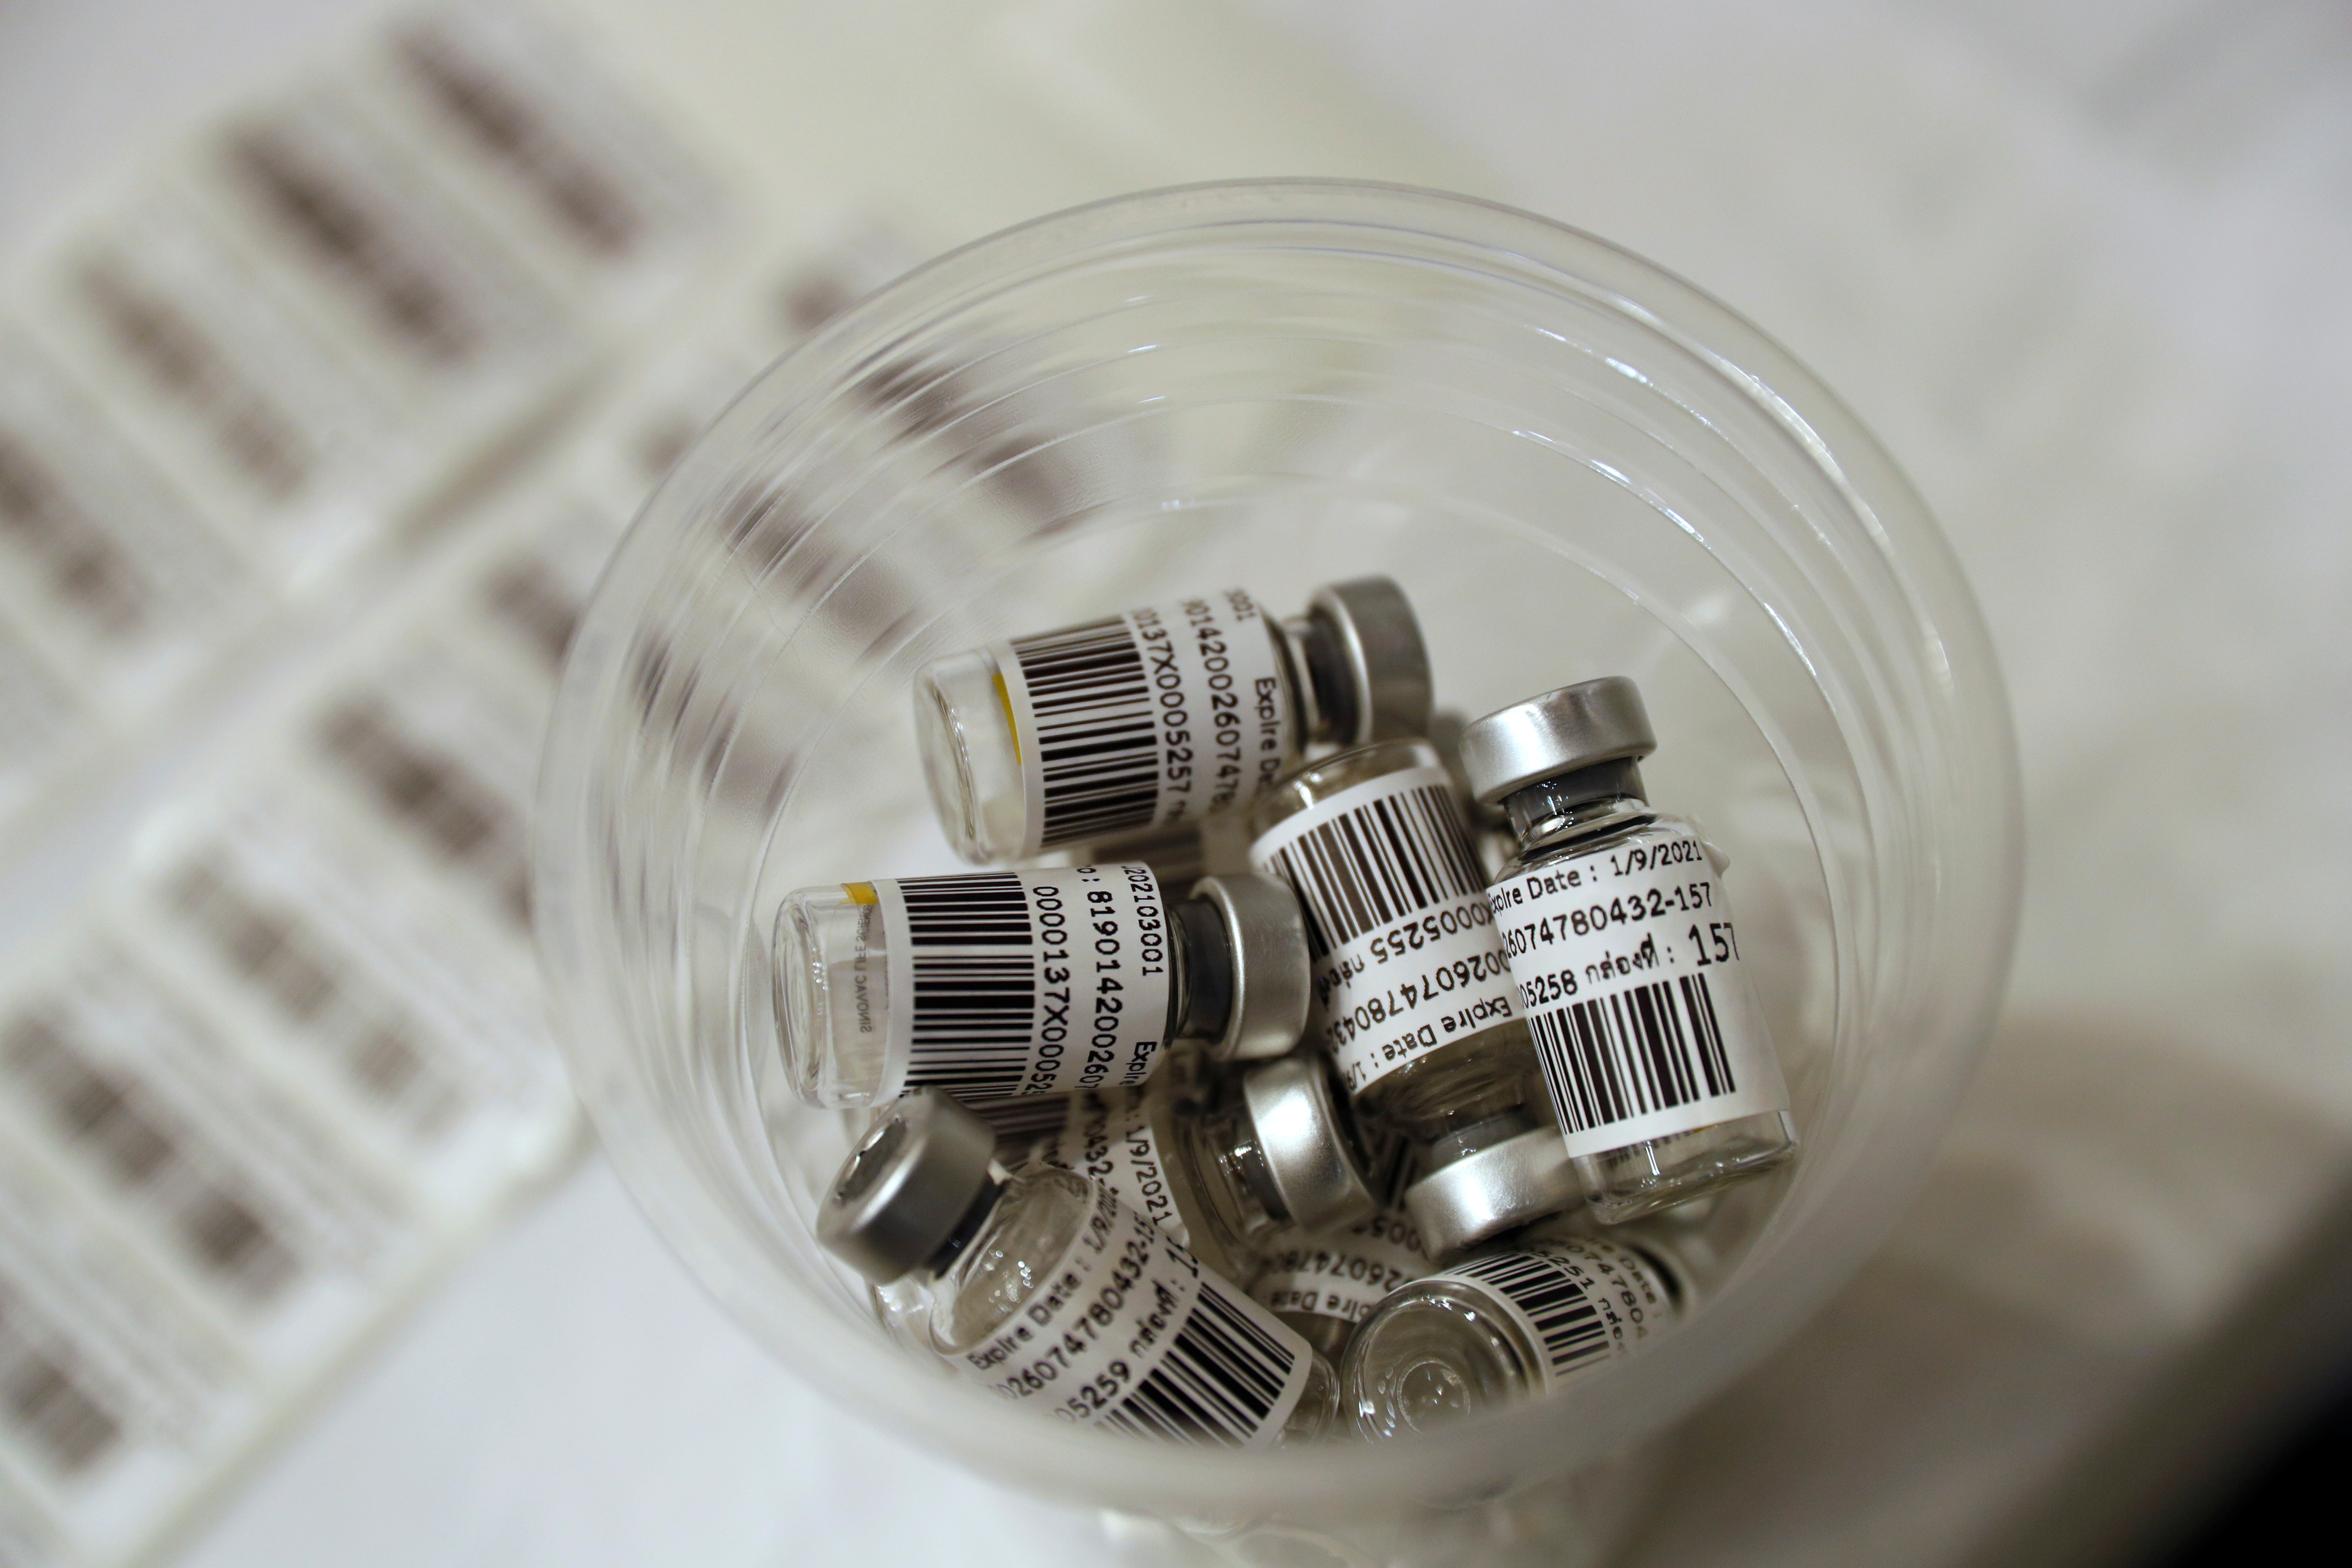 Dispensed vials of the Sinovac COVID-19 vaccine are seen as the Thai resort island of Phuket rushes to vaccinate its population amid the coronavirus disease (COVID-19) outbreak, and ahead of a July 1 ending of strict quarantine for overseas visitors, to bring back tourism revenue in Phuket, Thailand, April 1, 2021. REUTERS/Jorge Silva